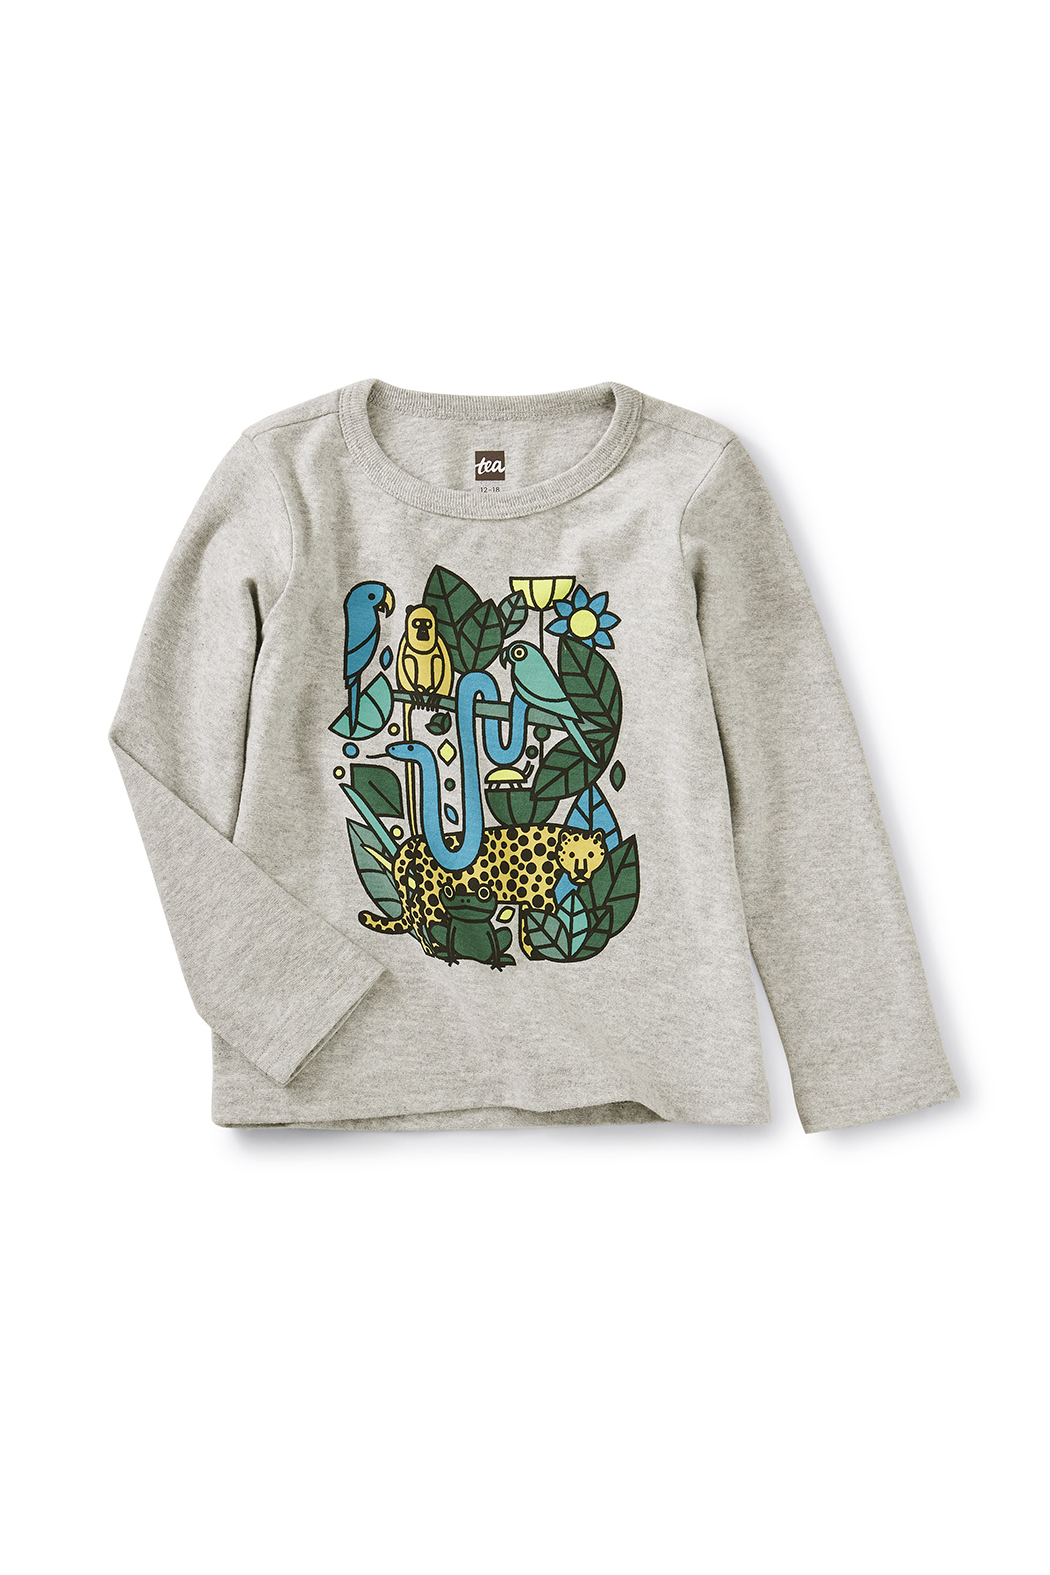 Tea Collection Incan Animals Graphic Tee - Front Cropped Image